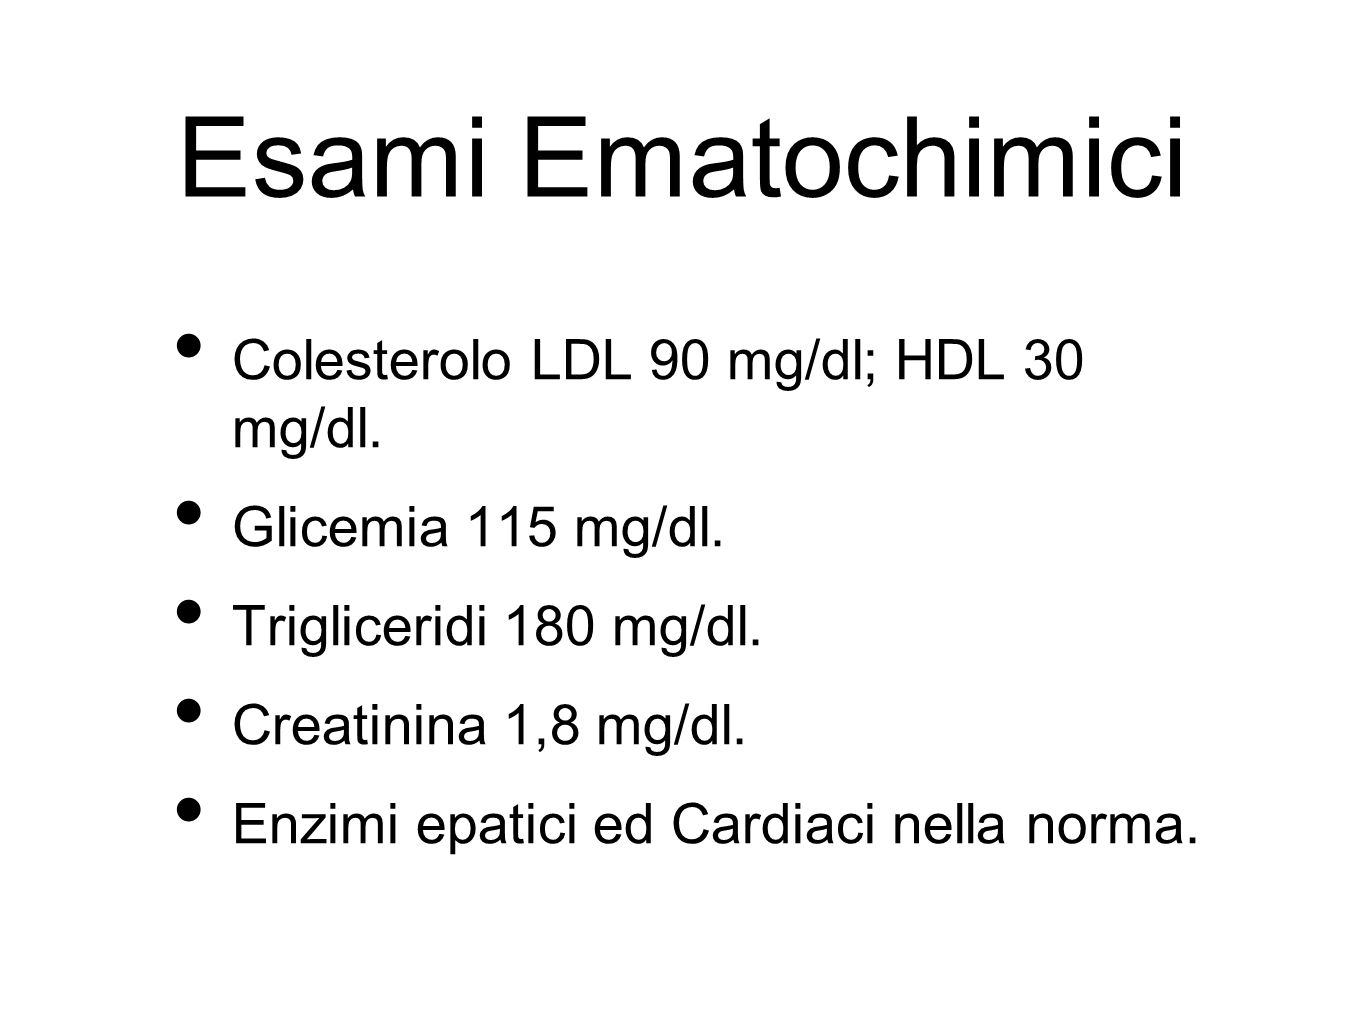 Esami Ematochimici Colesterolo LDL 90 mg/dl; HDL 30 mg/dl.